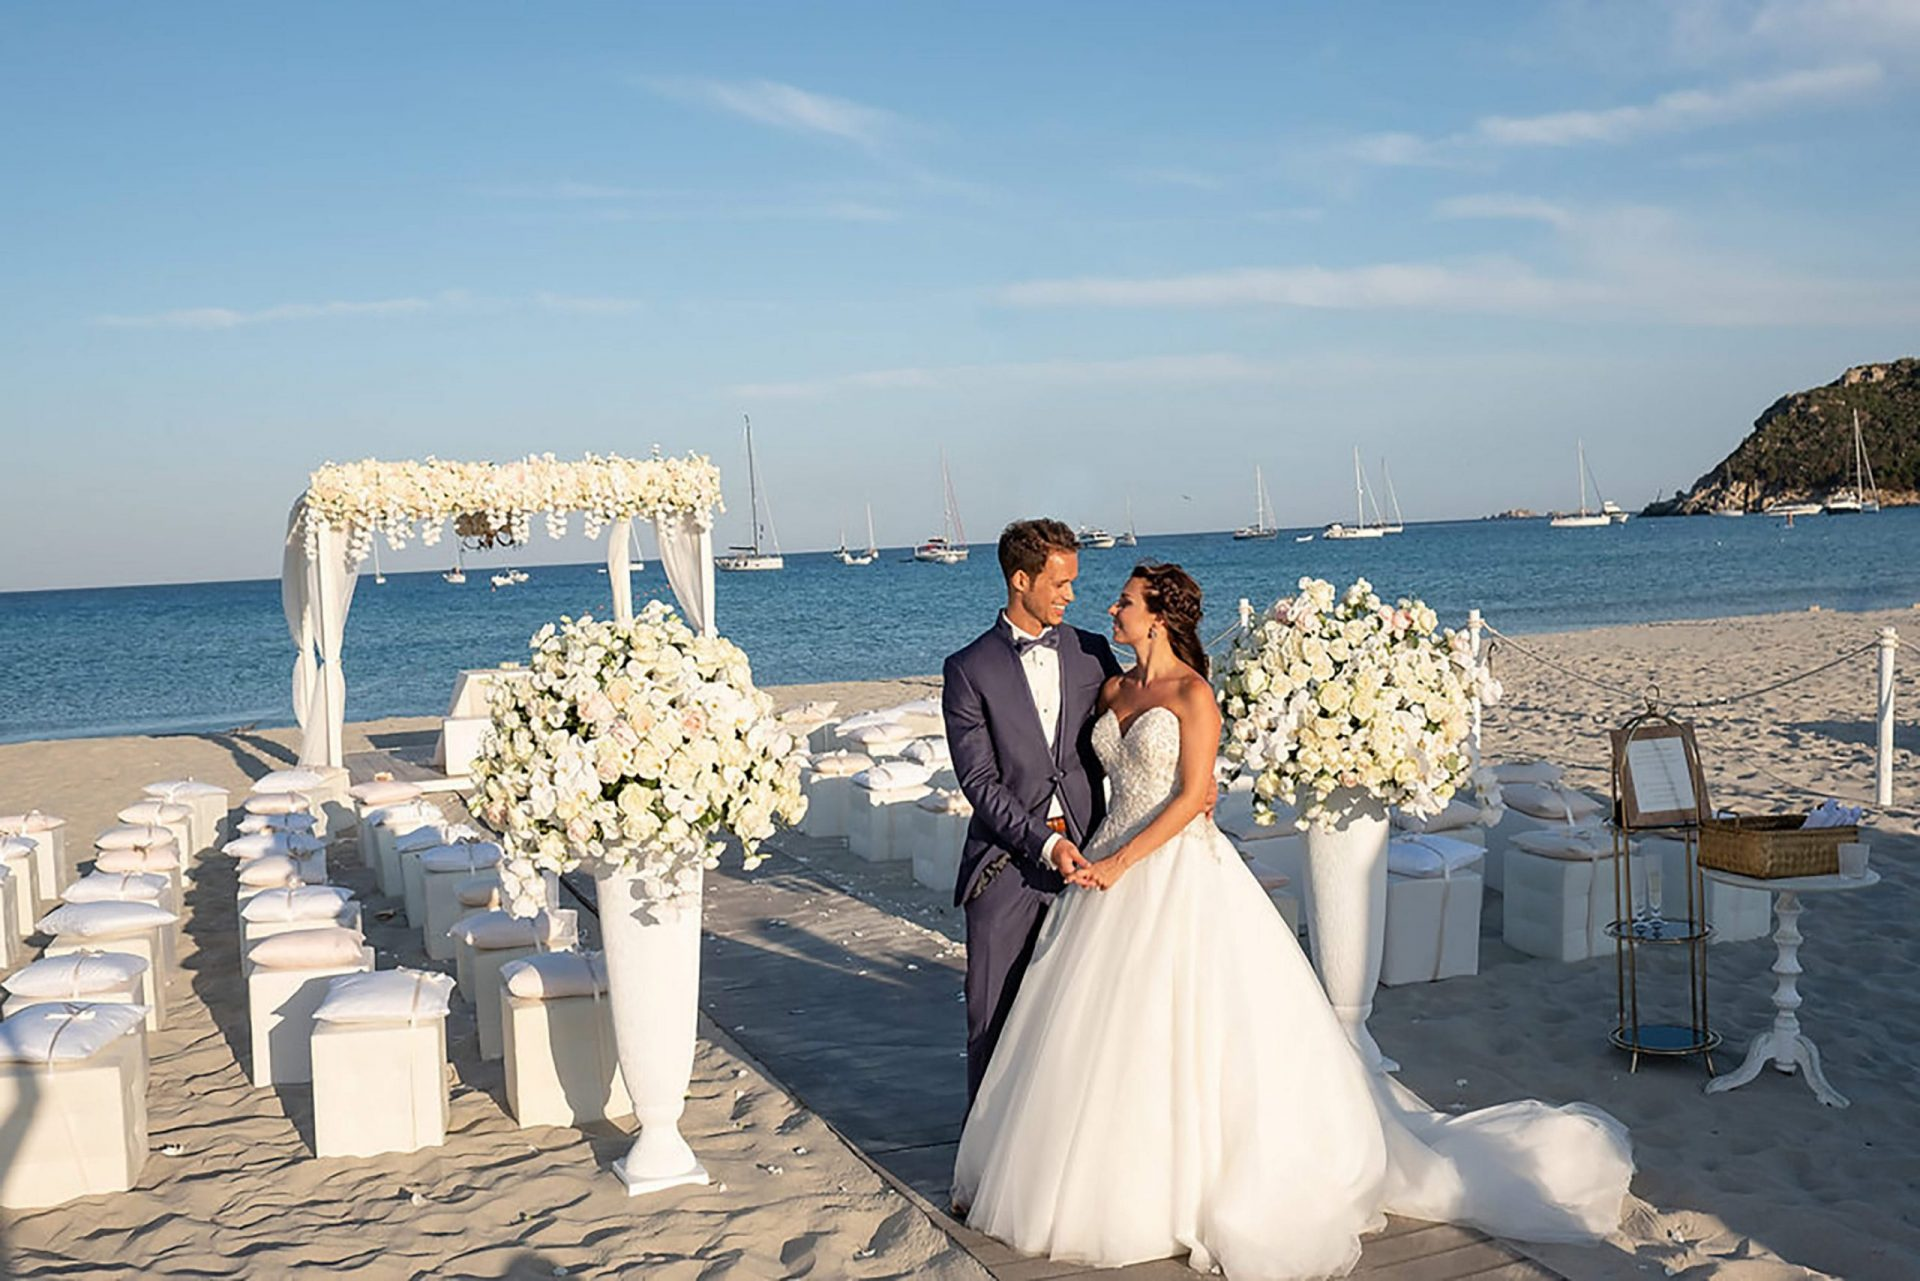 Talisa and Yassin, wedding on the beach